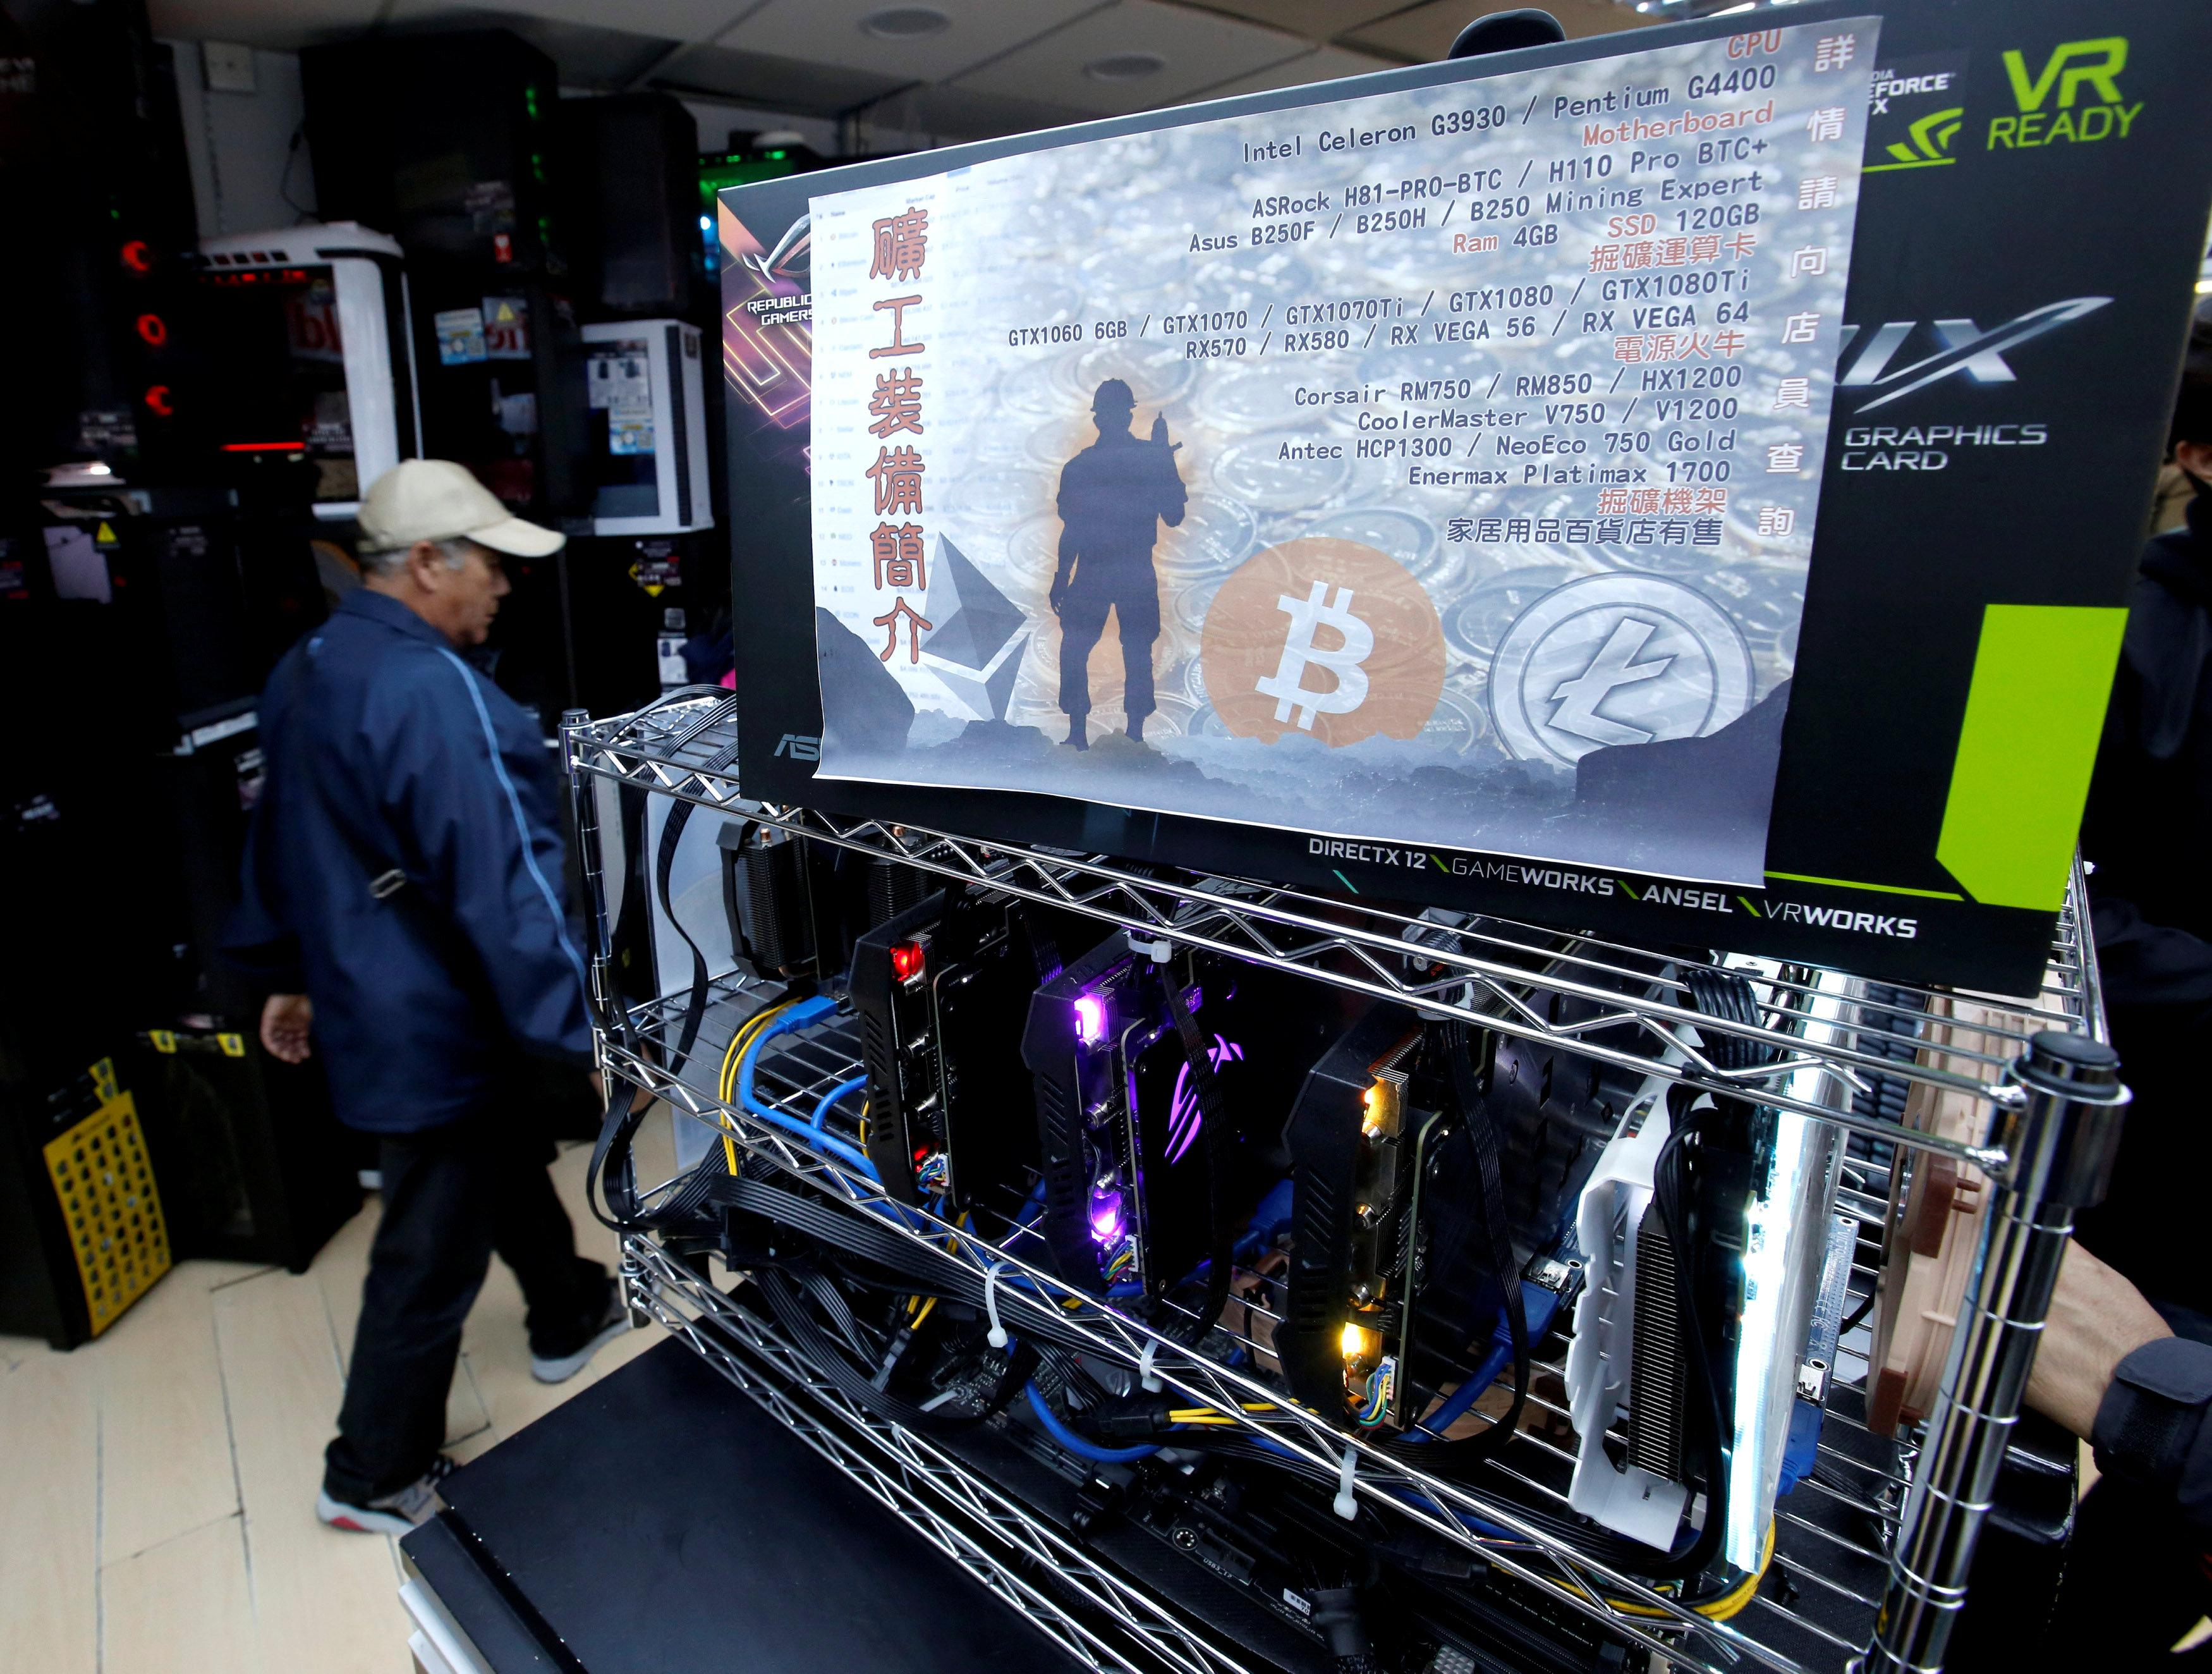 A cryptocurrency mining computer equipped with high-end graphic cards is seen on display at a computer mall in Hong Kong, China January 29, 2018. Picture taken January 29, 2018.  Bobby Yip